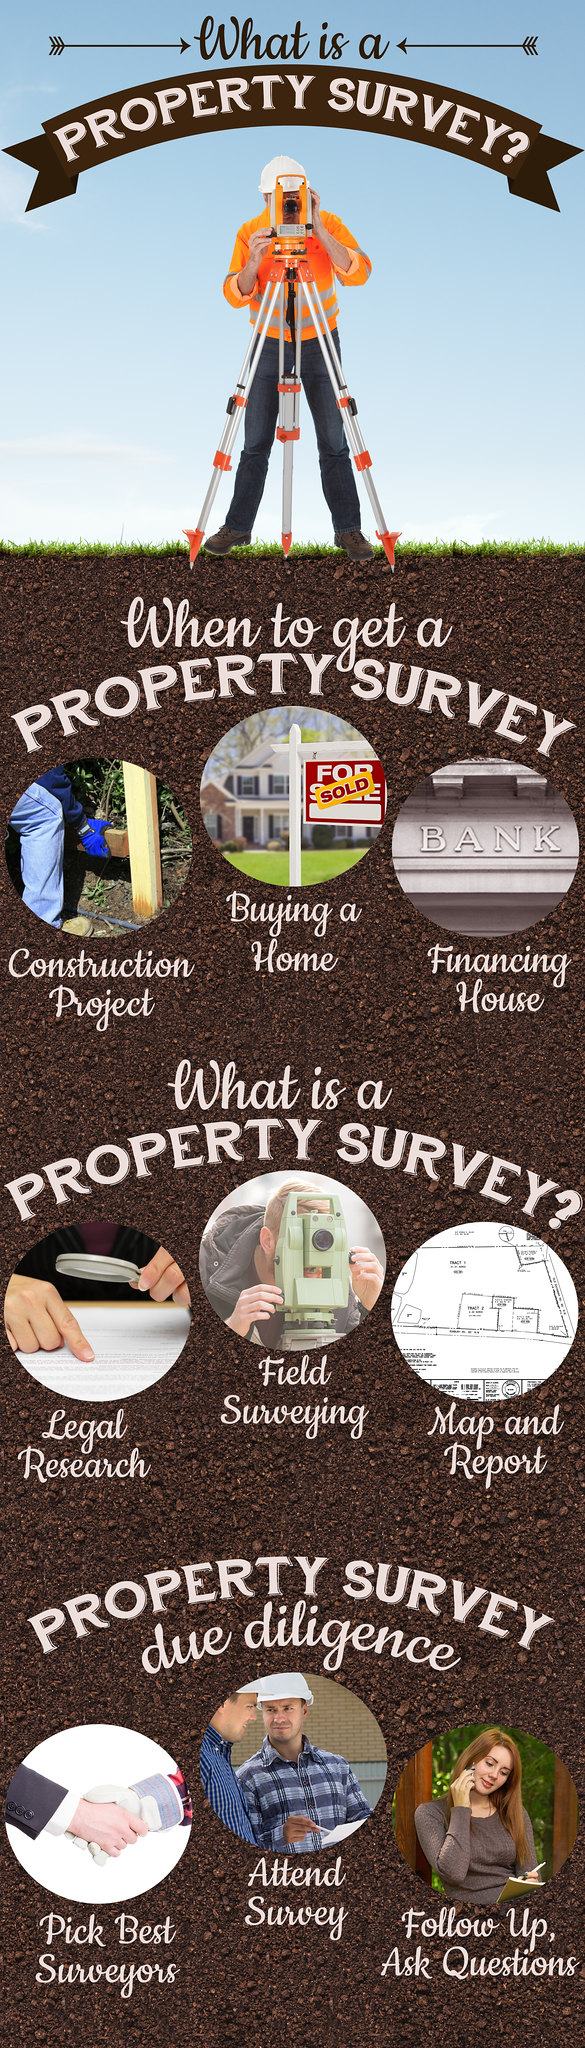 What Is A Property Survey And Why Is It Important